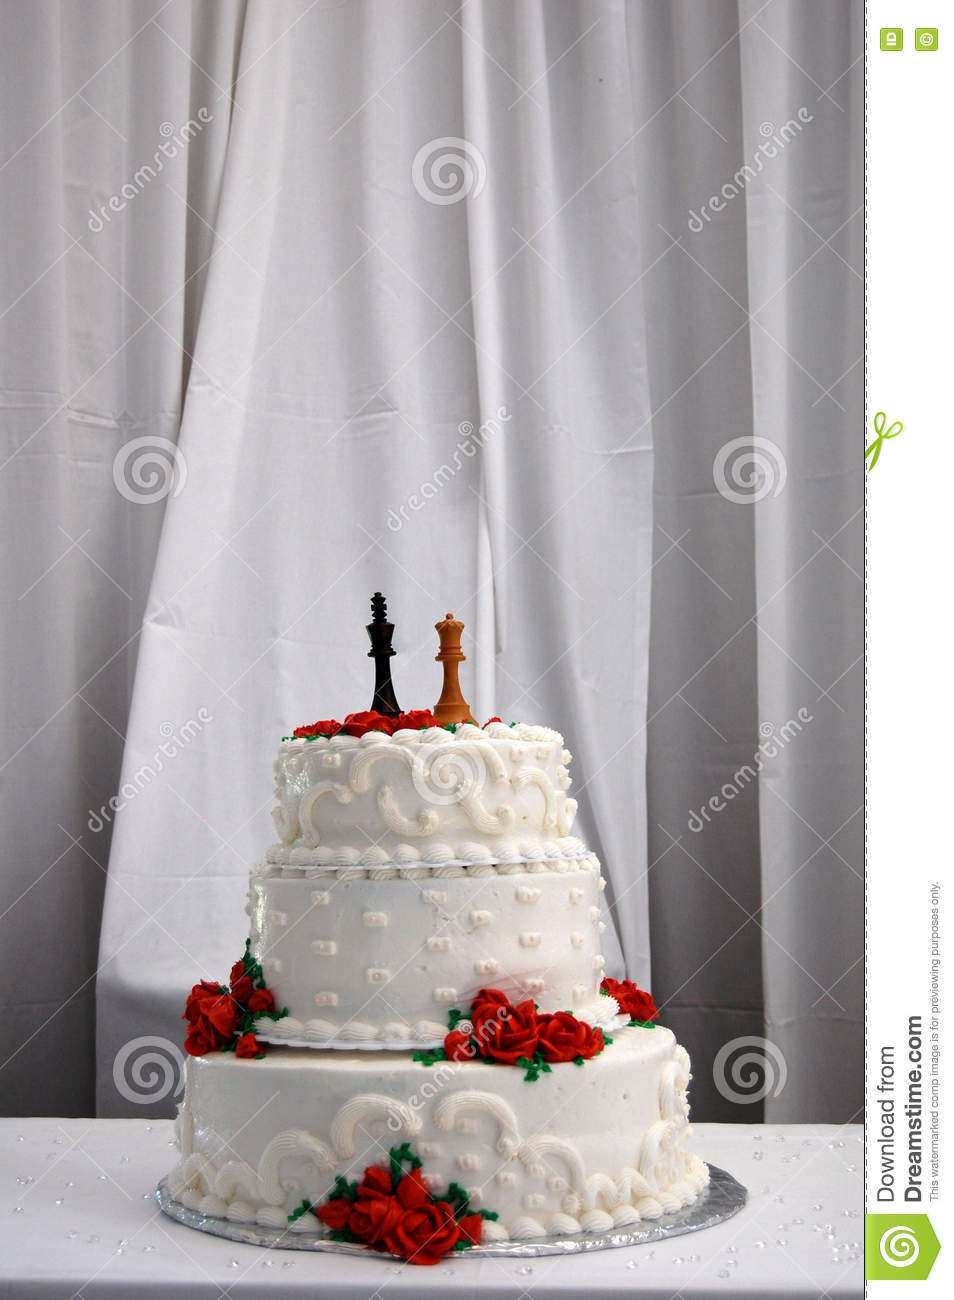 Three Tier Wedding Cake With Red Roses Stock Image - Image of bride ...